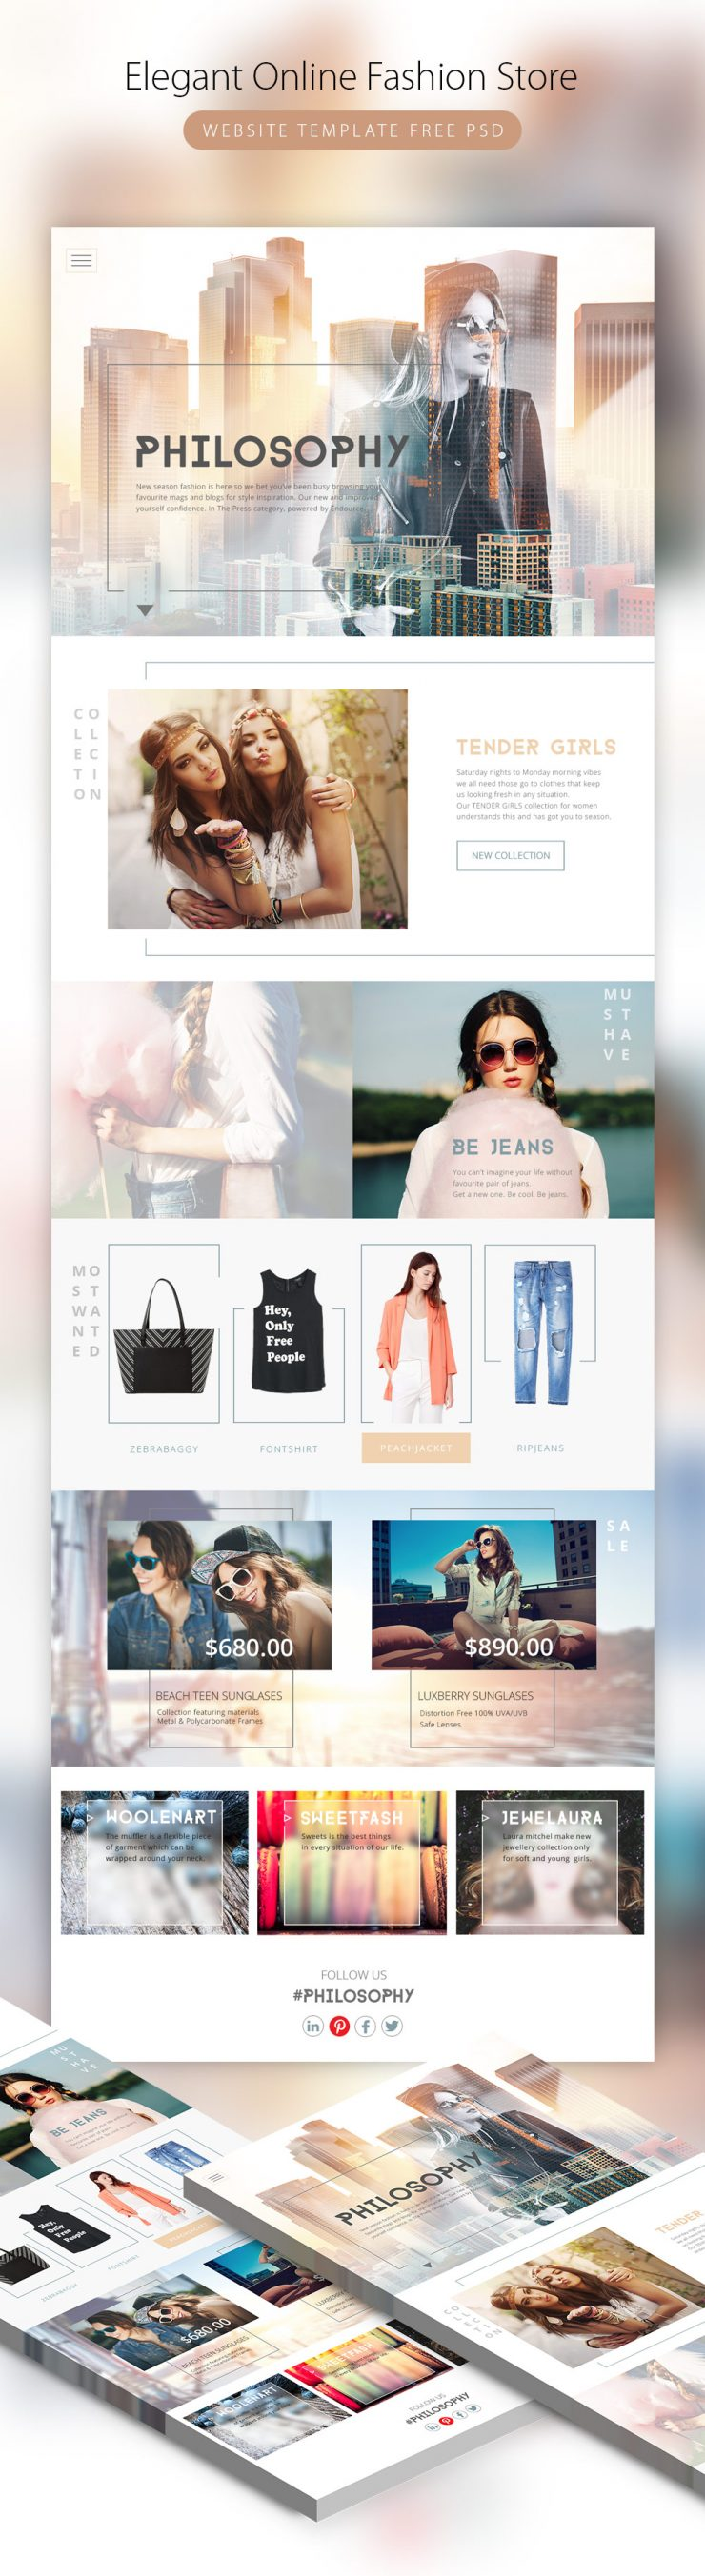 Elegant Online Fashion Store Website Template PSD